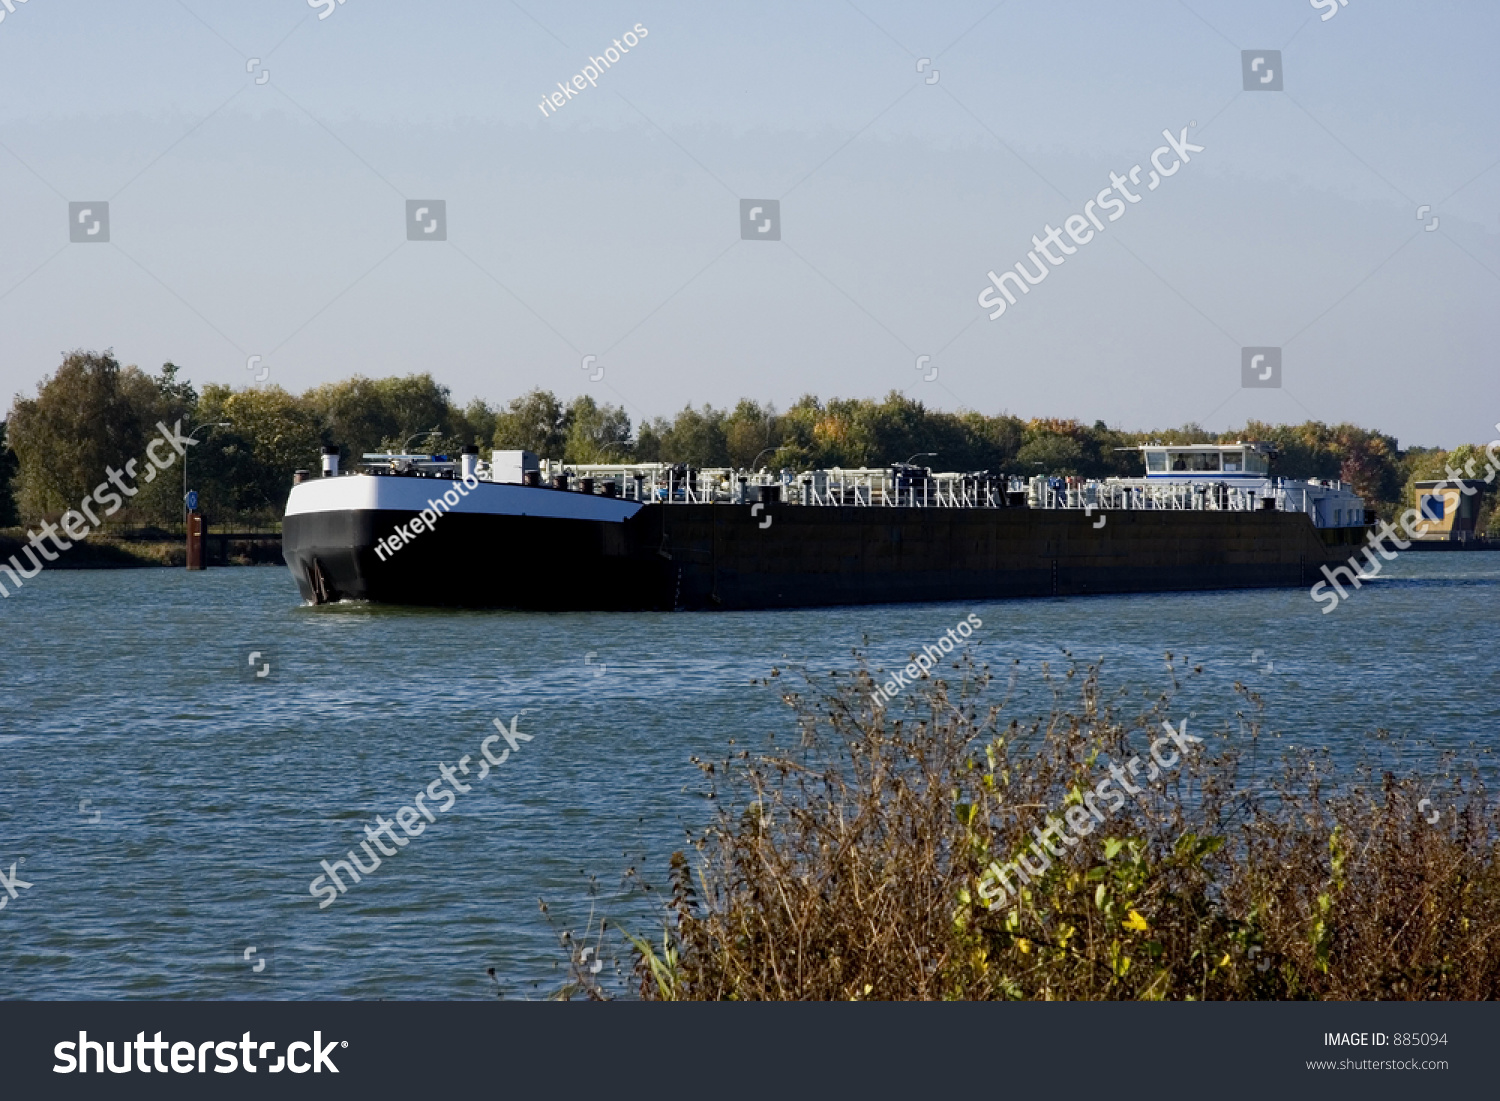 Inland Waterway Transportation - Channel In Germany - Adobe Rgb Stock Photo 885094 : Shutterstock